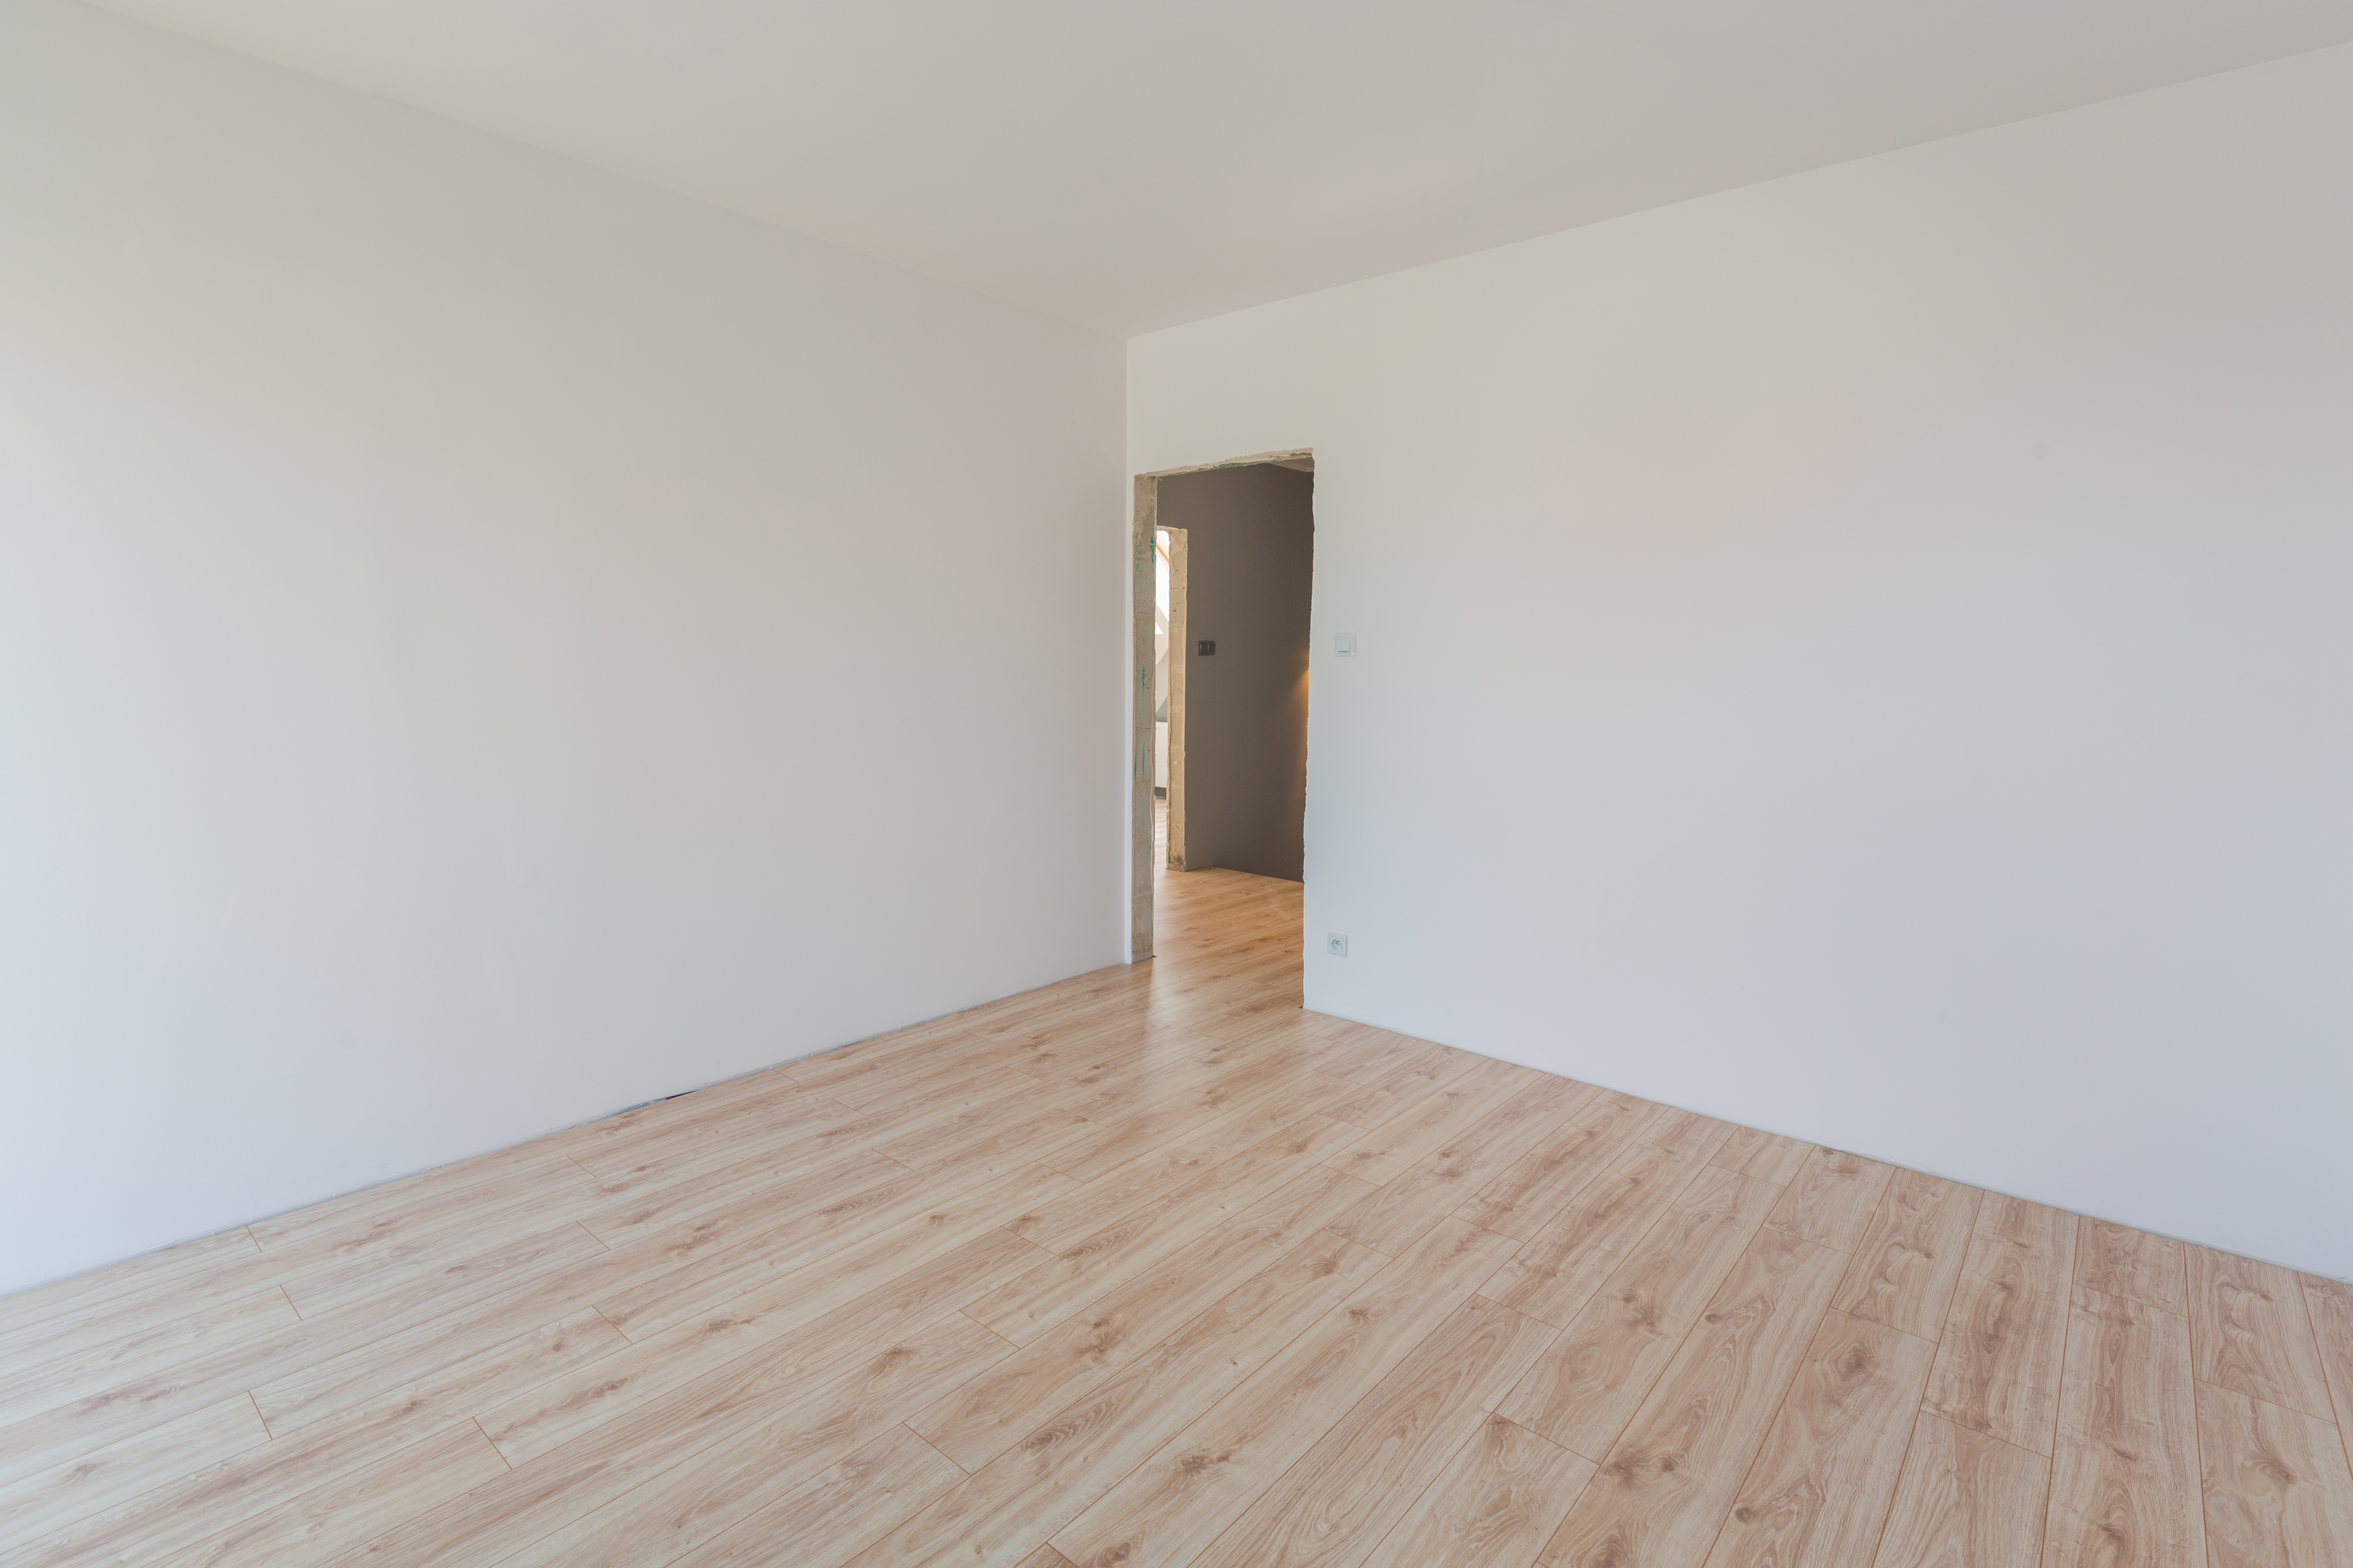 How to Install Laminated Flooring Transition Molding | Home Guides